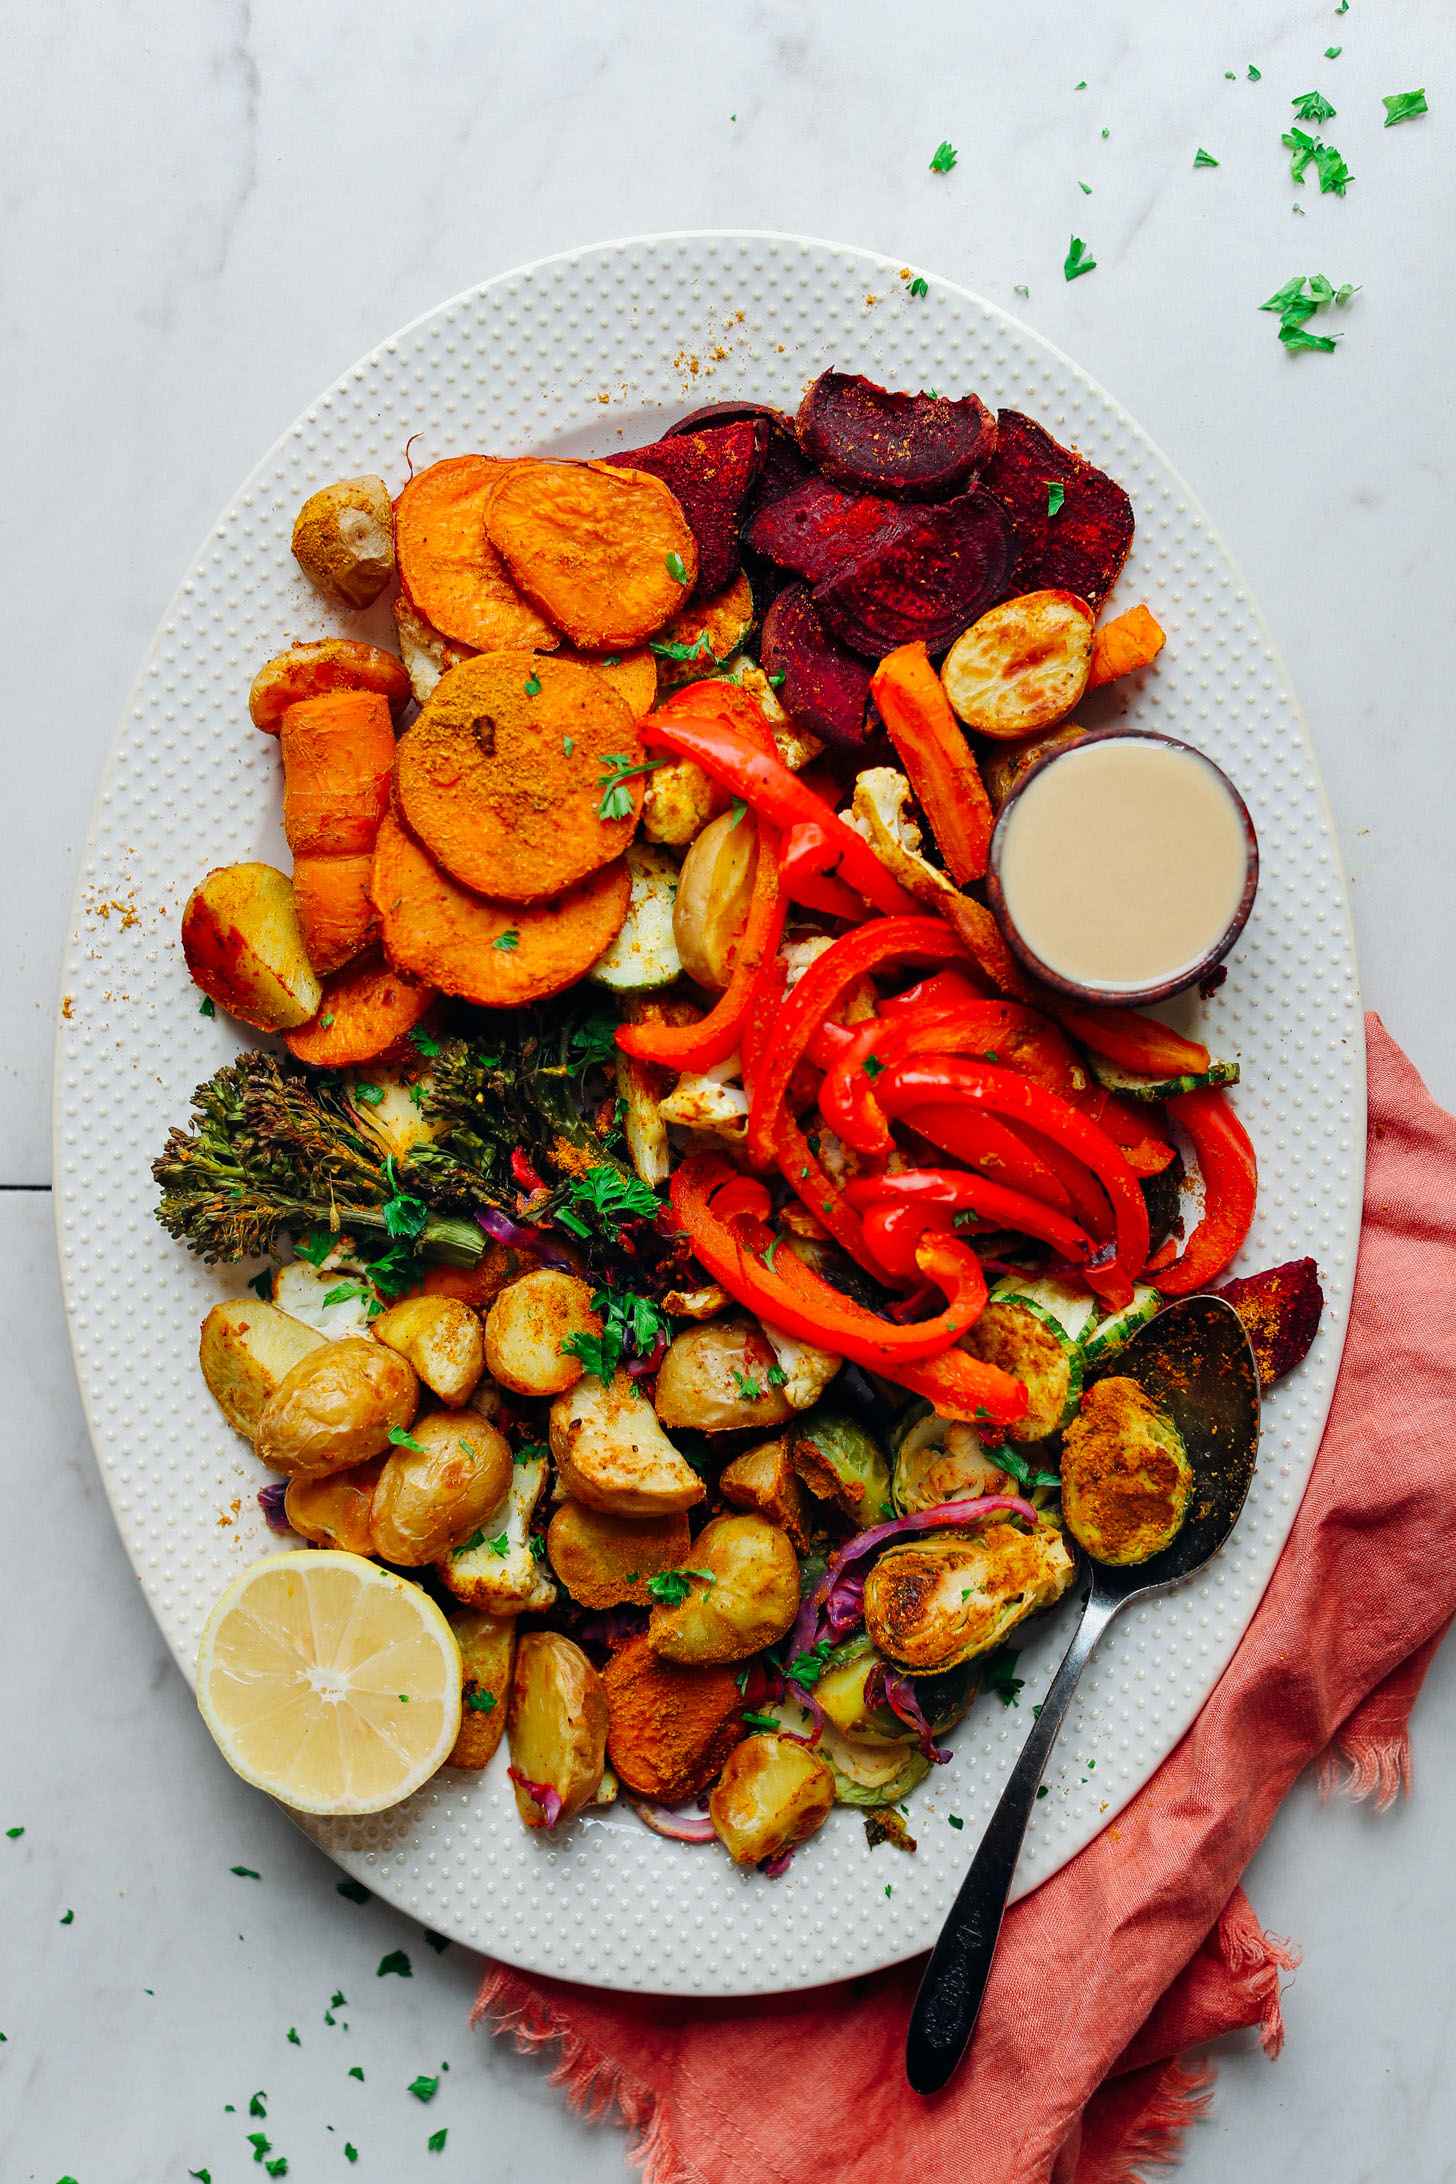 Serving platter filled with colorful Oil-Free Roasted Vegetables with lemon and tahini for serving